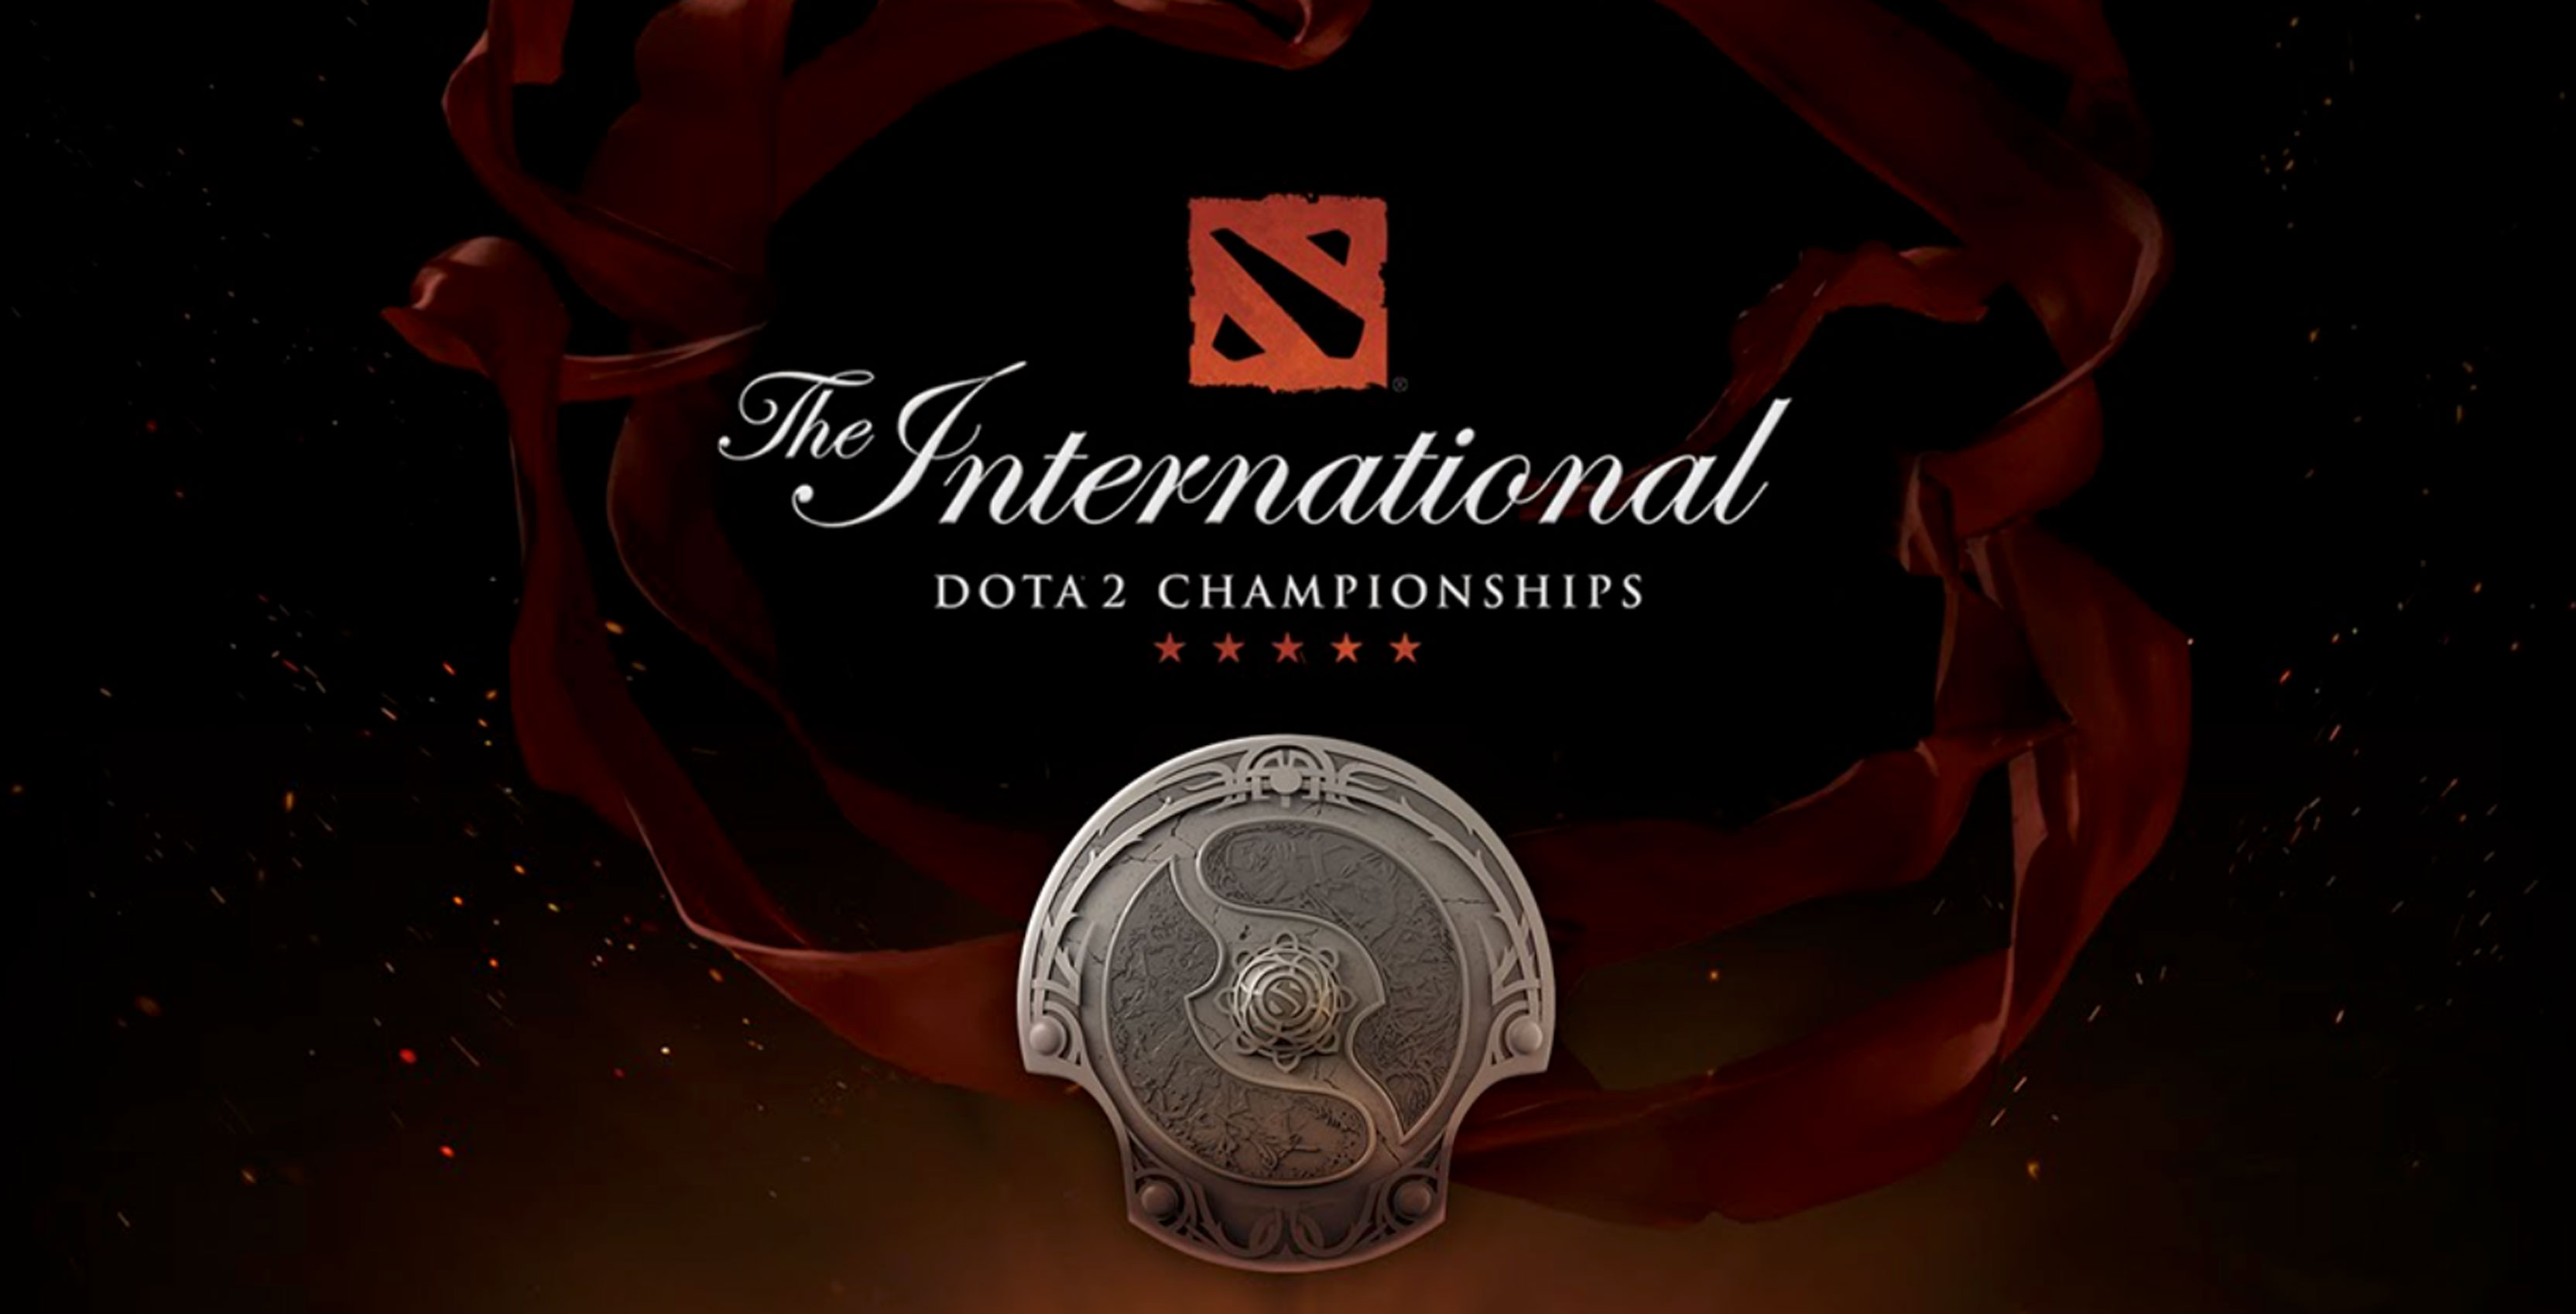 Dota 2's The International heading to Canada for the first time